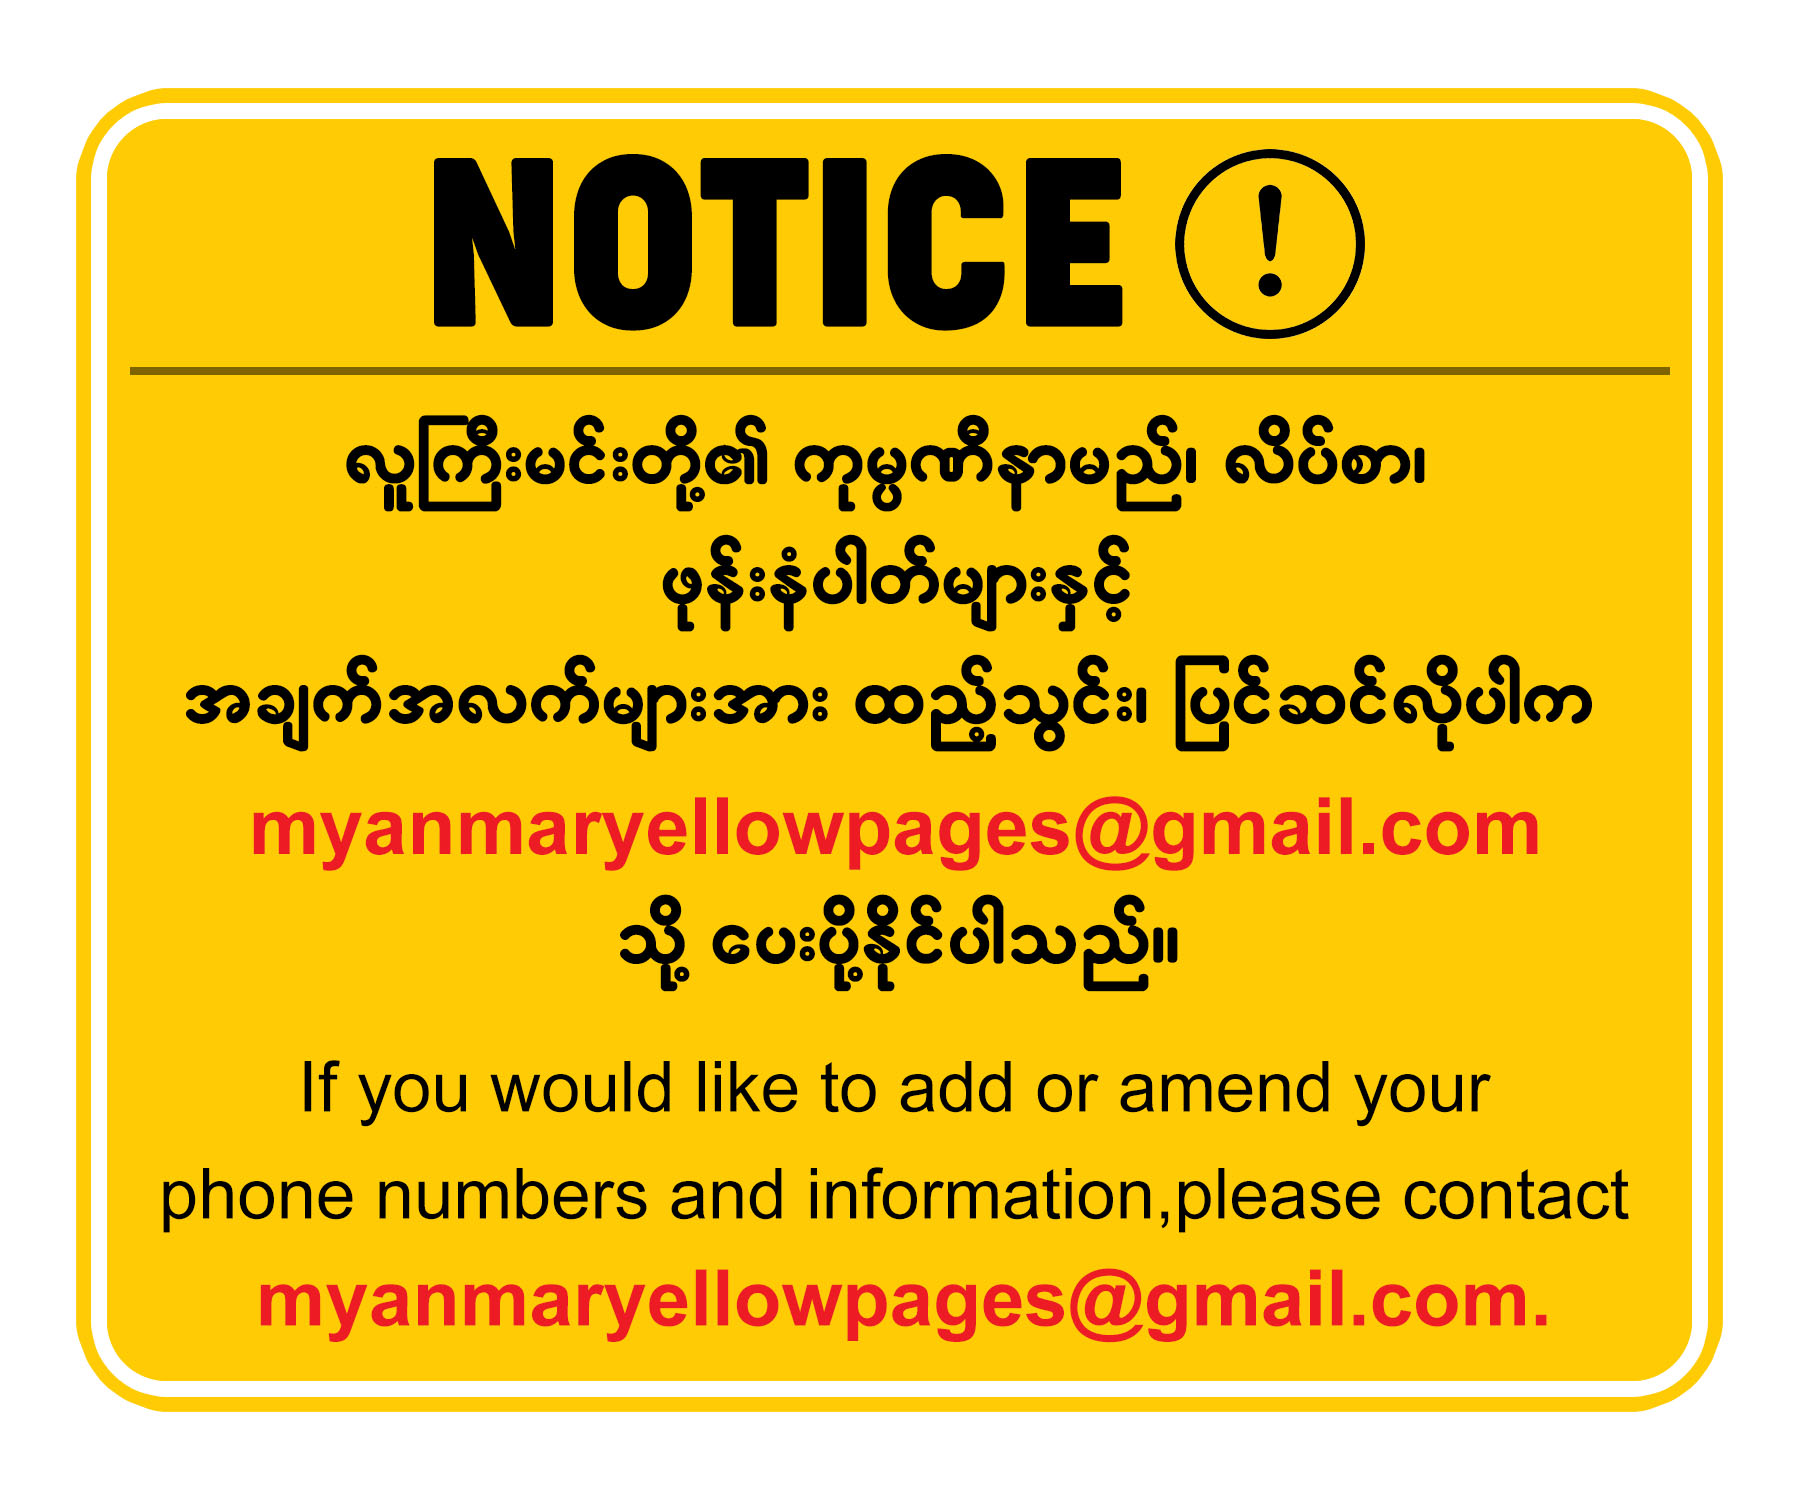 Myanmar Yellow Pages Notice Banner